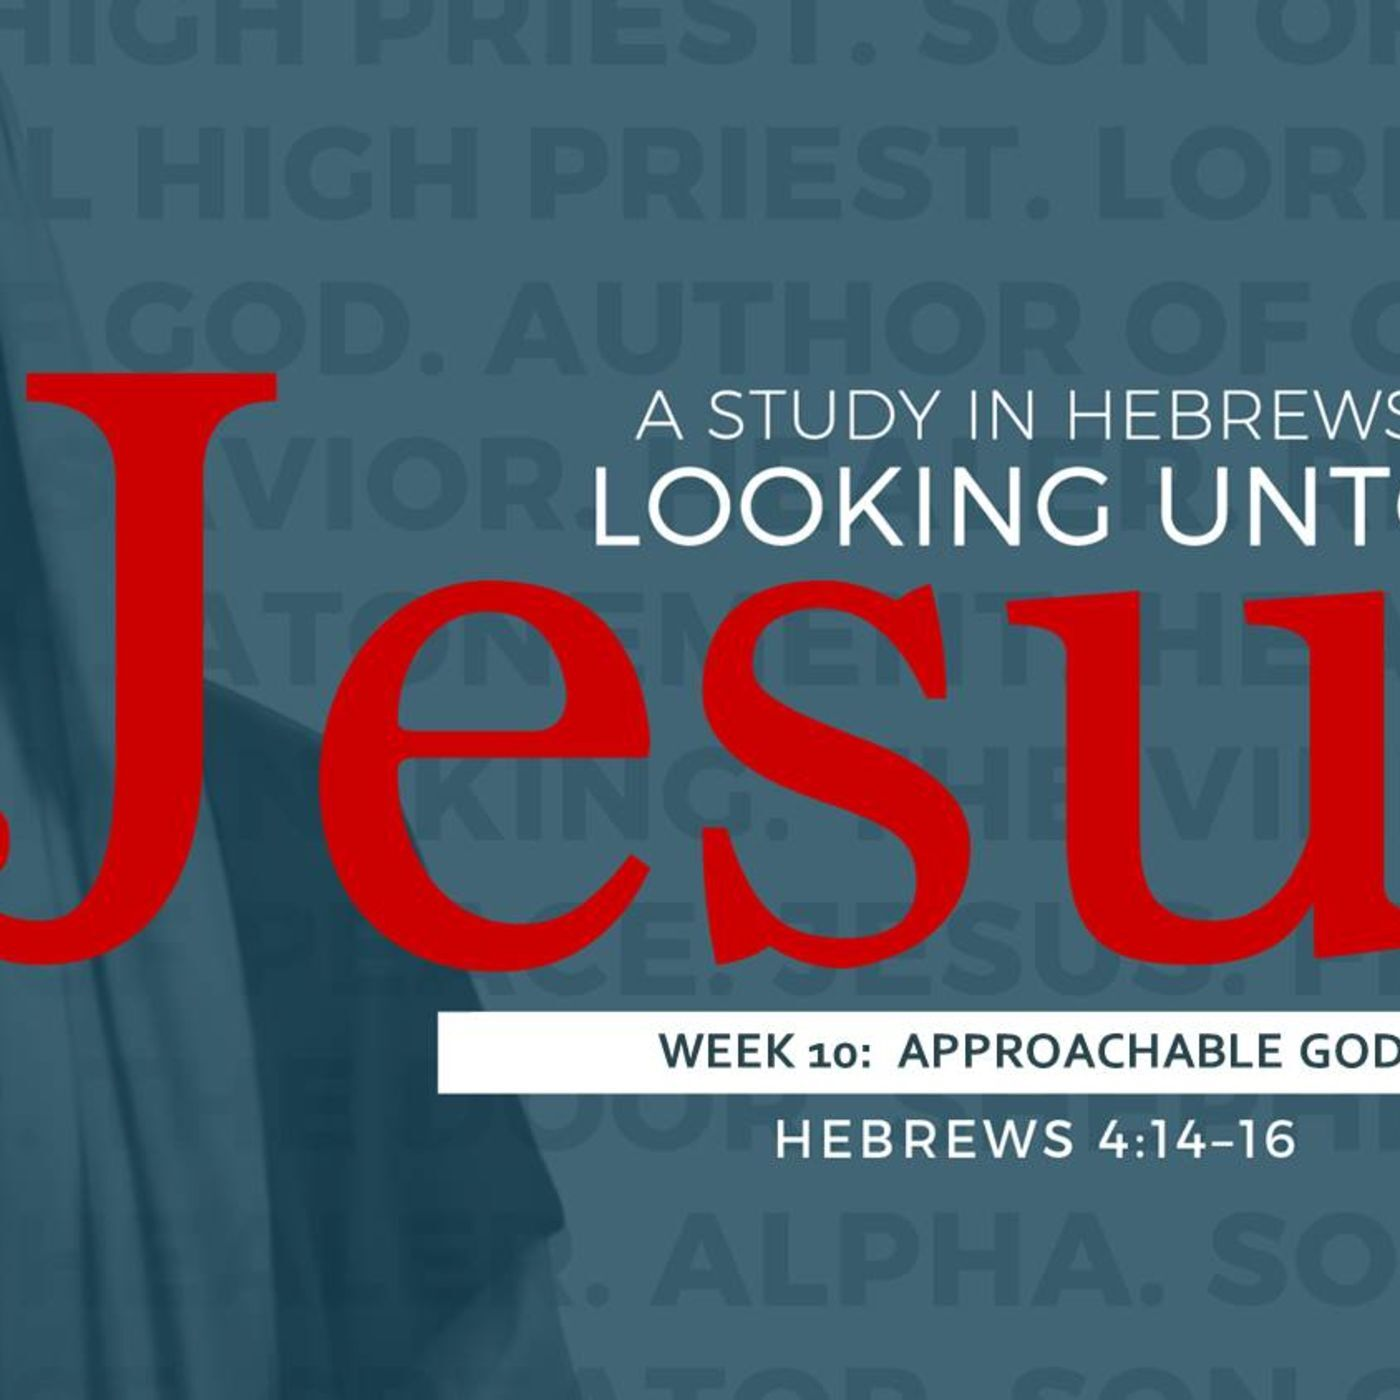 South Side Baptist Church - 10-22-17 Approachable God #10 in